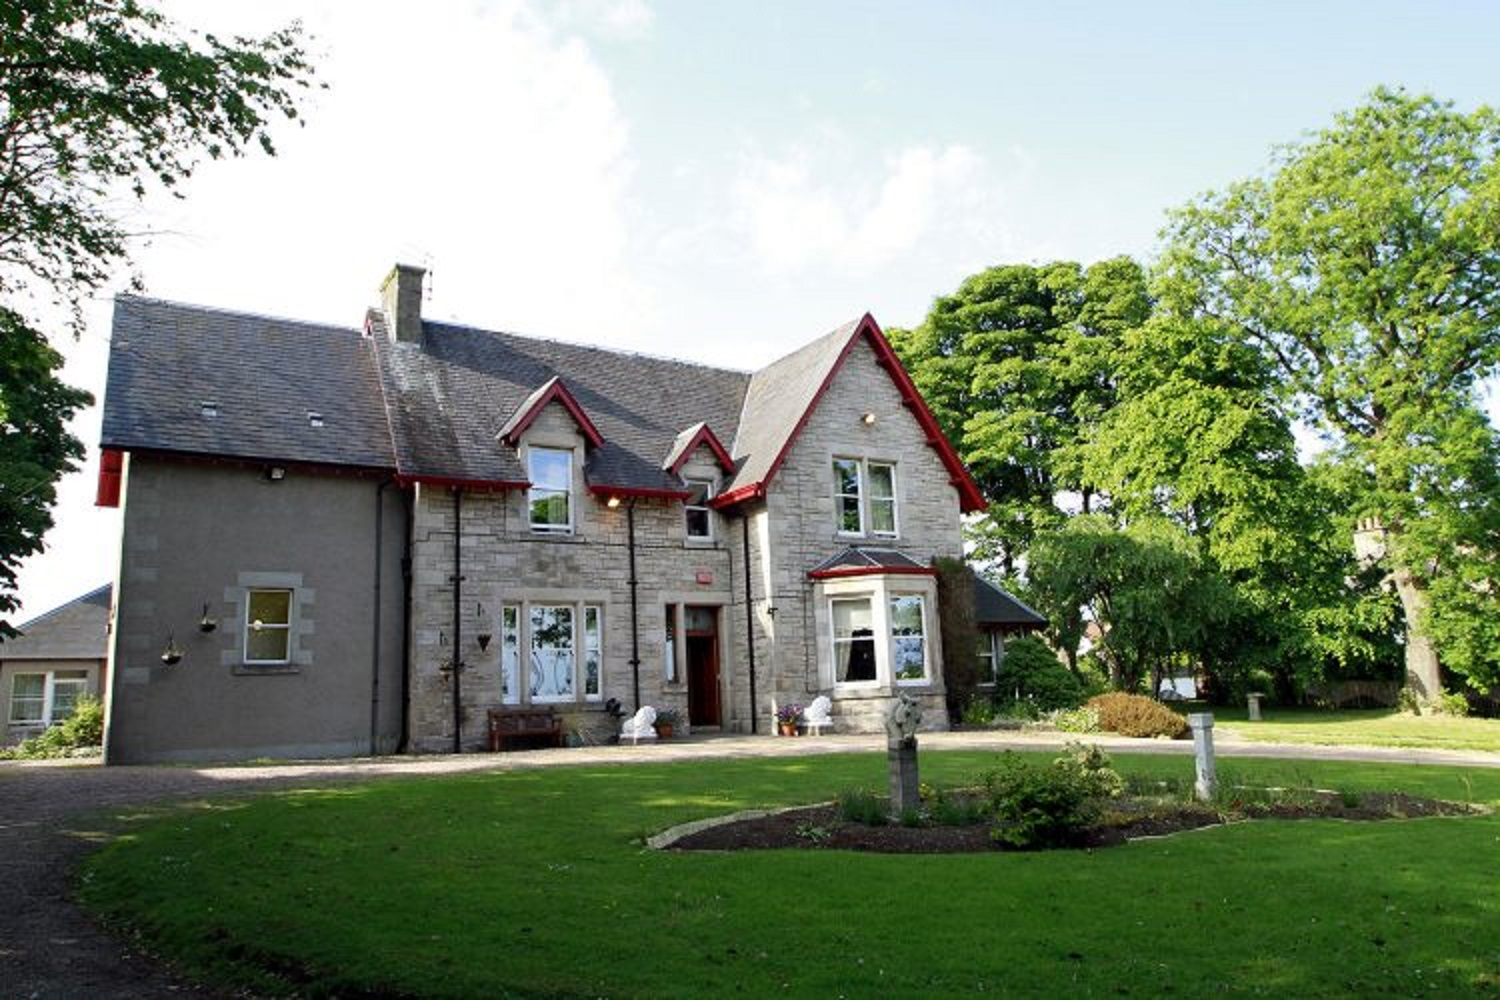 Scoonie House in Leven has room for 36 residents.